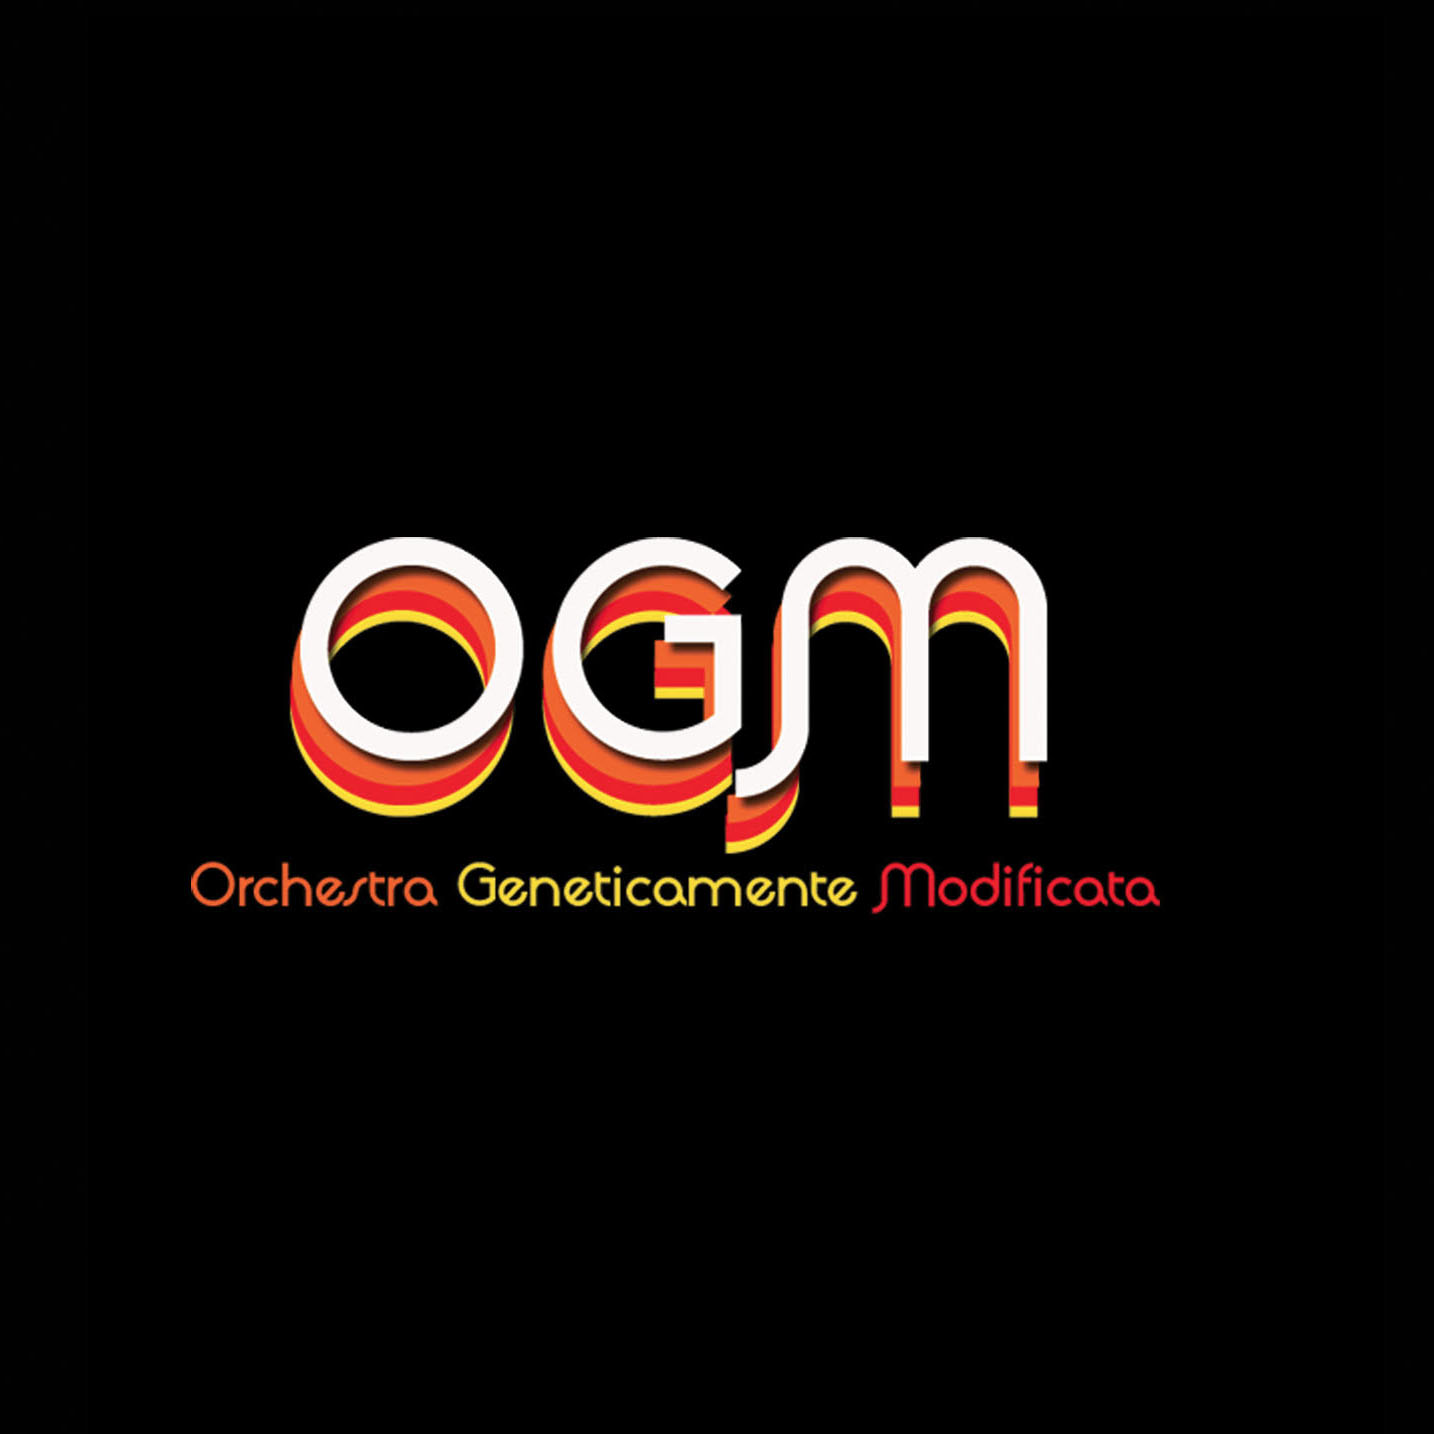 OGM, Orchestra Geneticamente Modificata